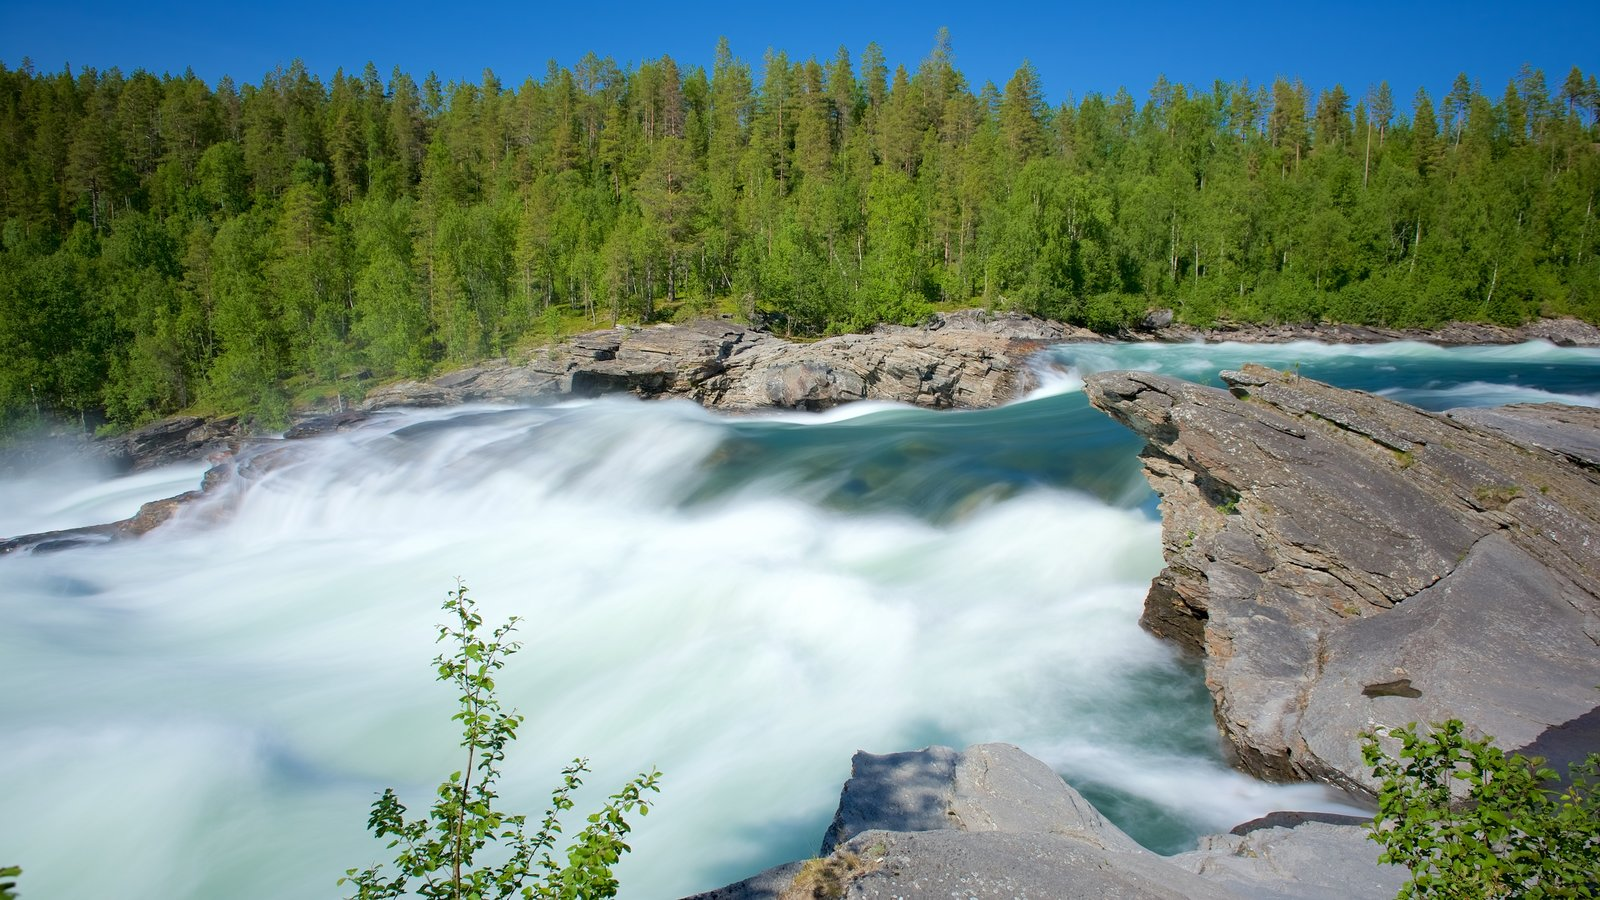 Maalselvfossen Waterfall which includes forest scenes and rapids